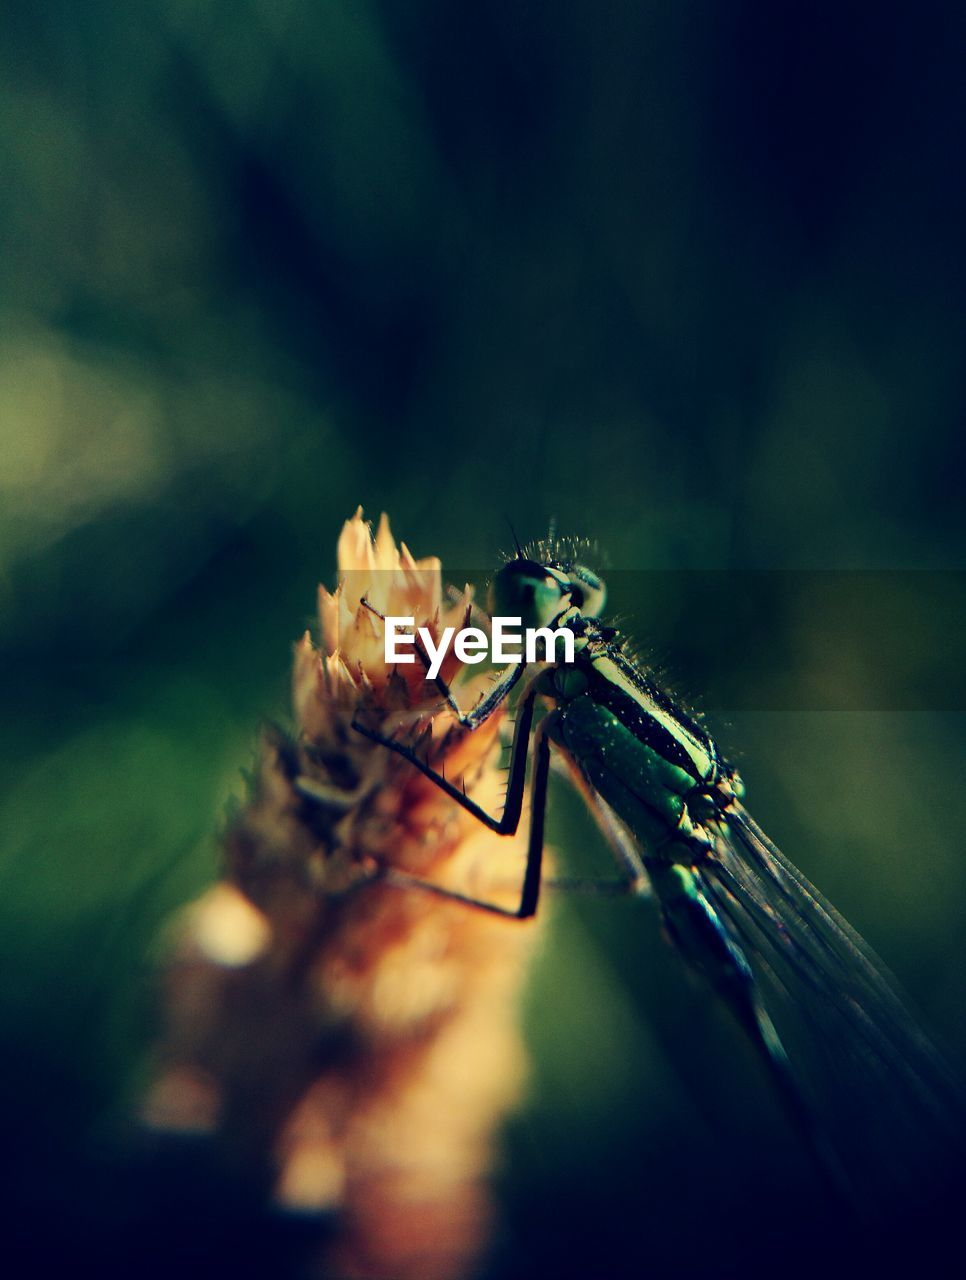 insect, animal themes, one animal, animals in the wild, animal wildlife, no people, close-up, damselfly, day, nature, outdoors